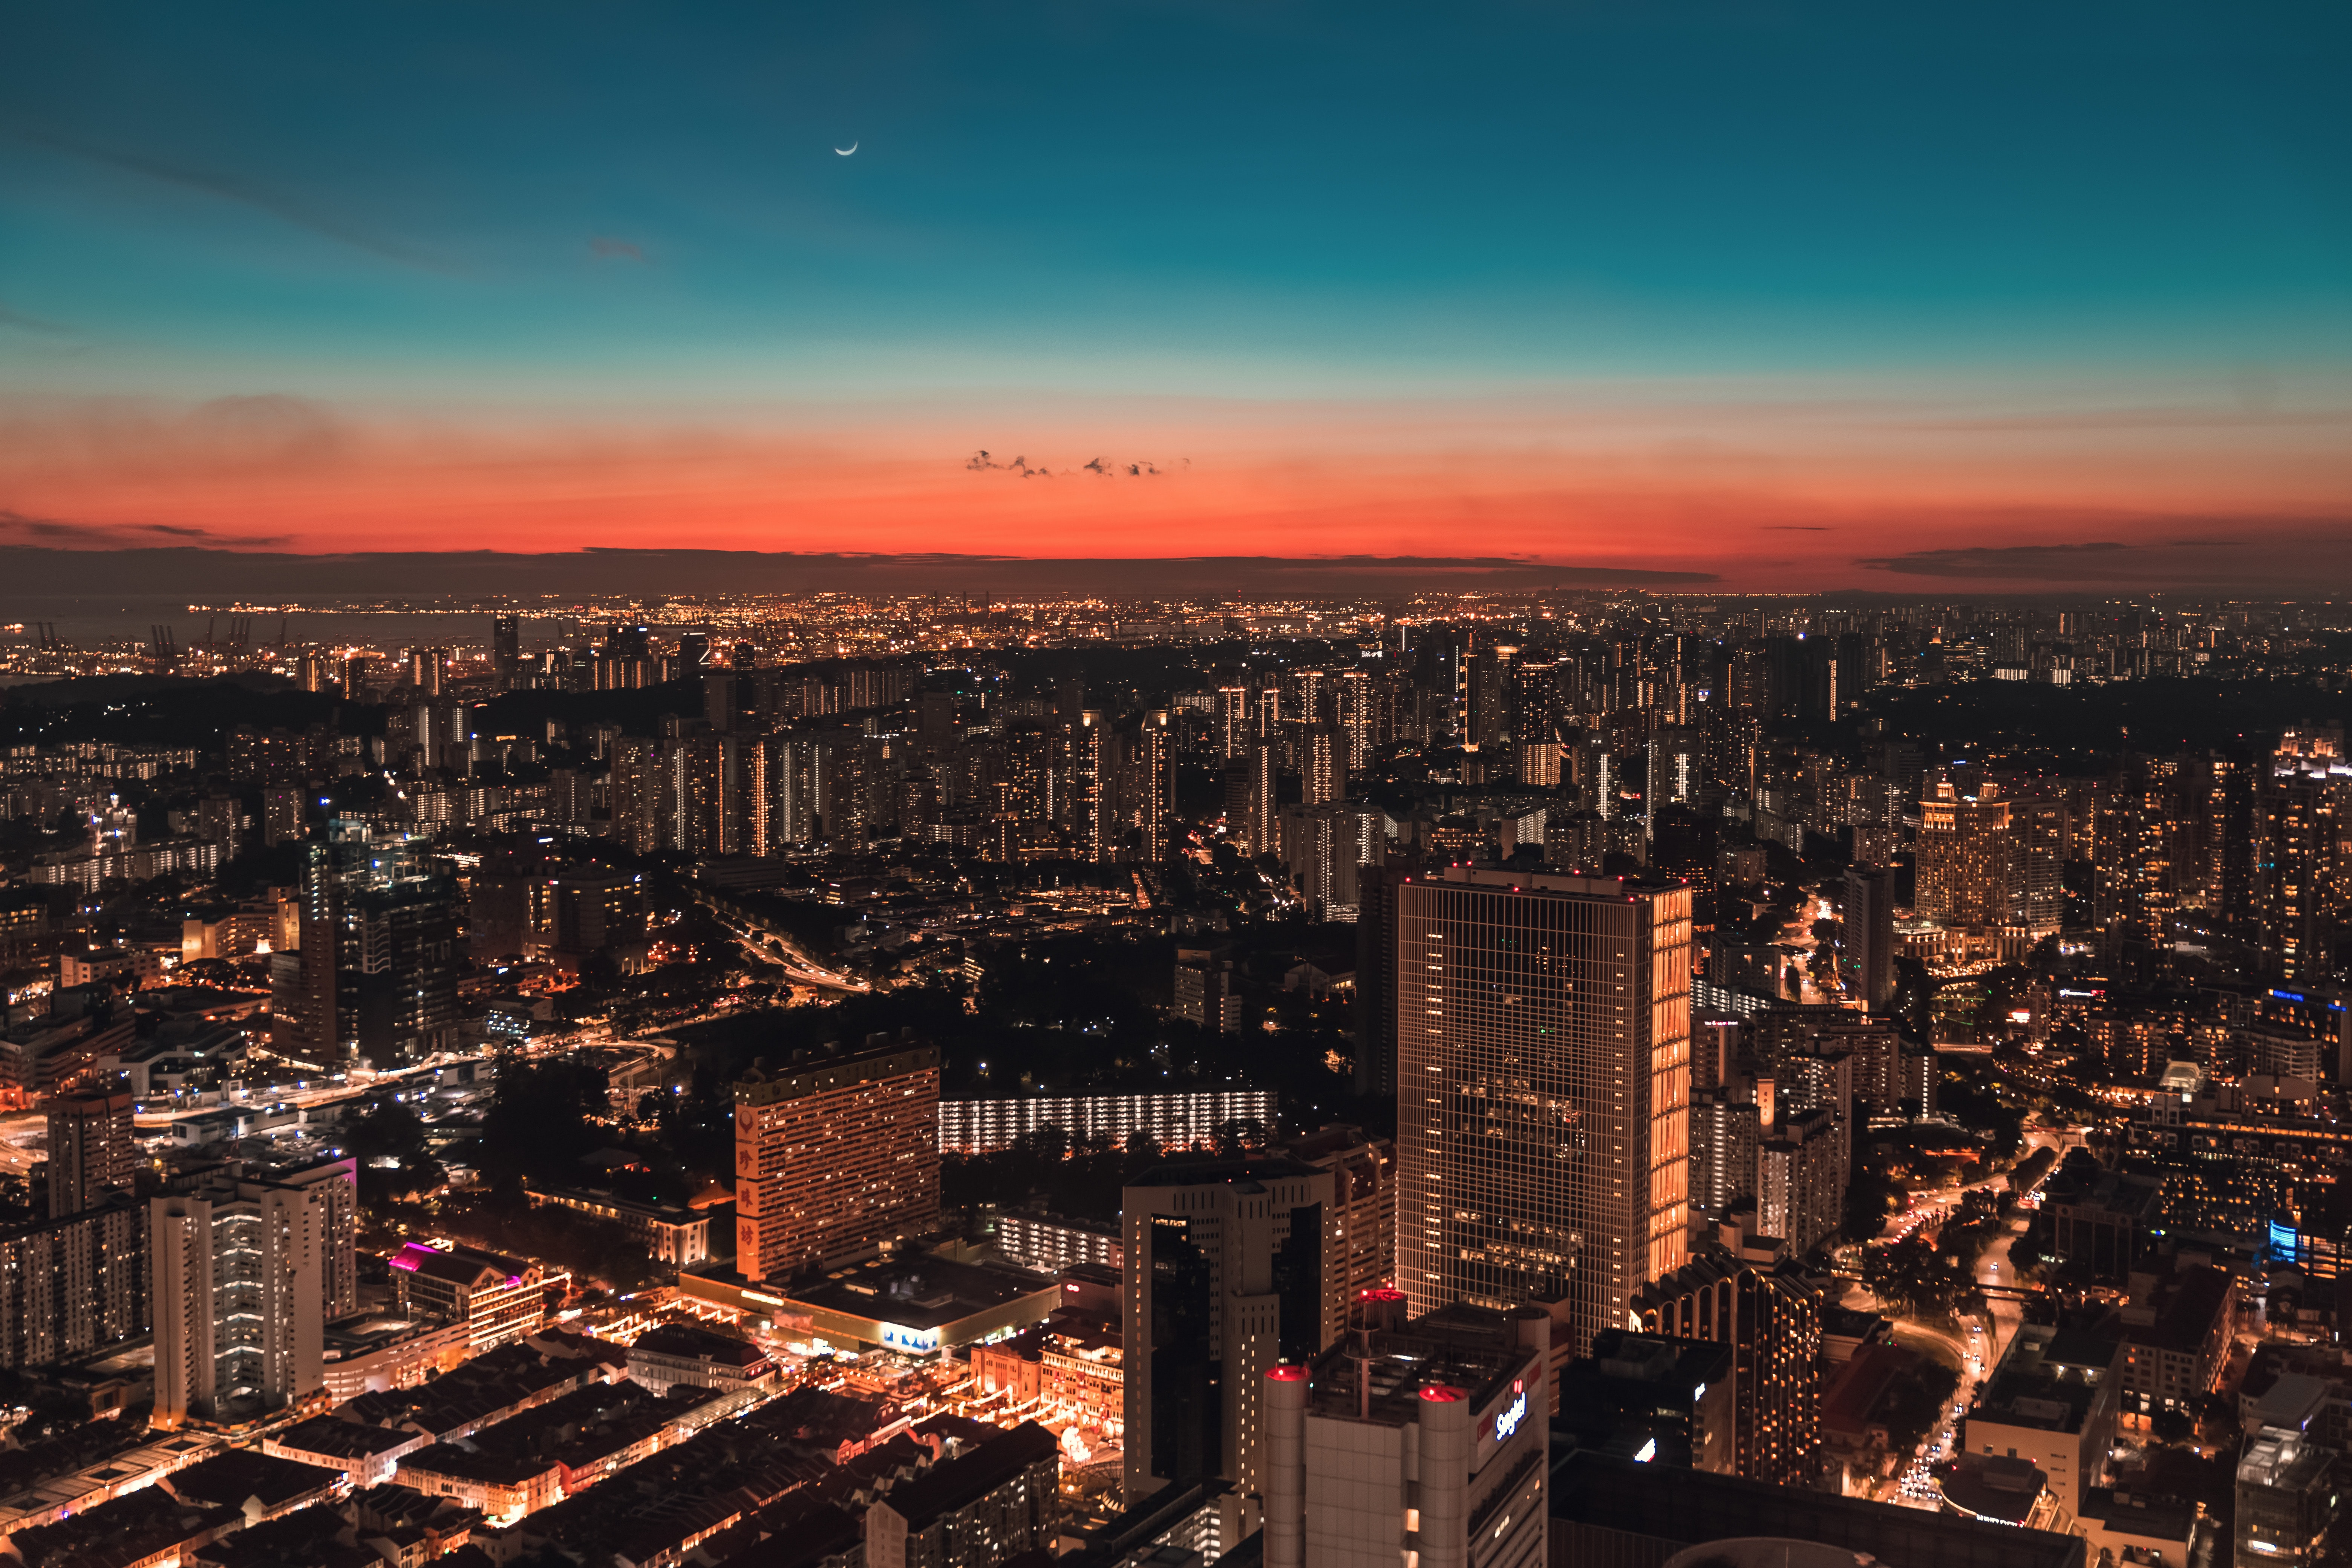 aerial view skyline of singapore 4k 1629228074 - Aerial View Skyline Of Singapore 4k - Aerial View Skyline Of Singapore wallpapers, Aerial View Skyline Of Singapore 4k wallpapers